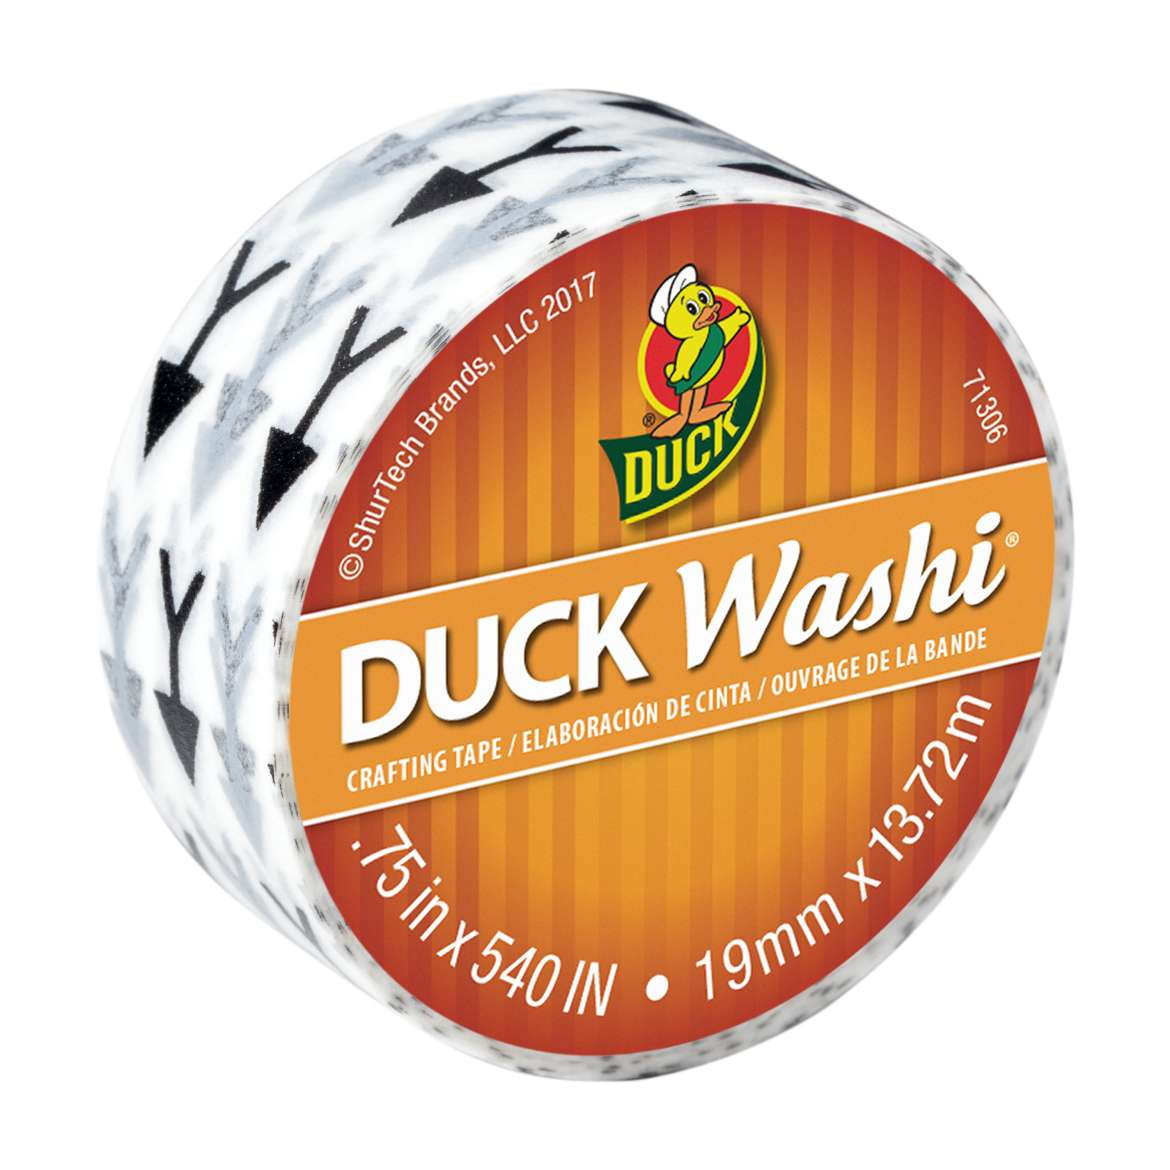 Duck Washi® Crafting Tape - Arrows, 0.75 in. x 15 yd. Image